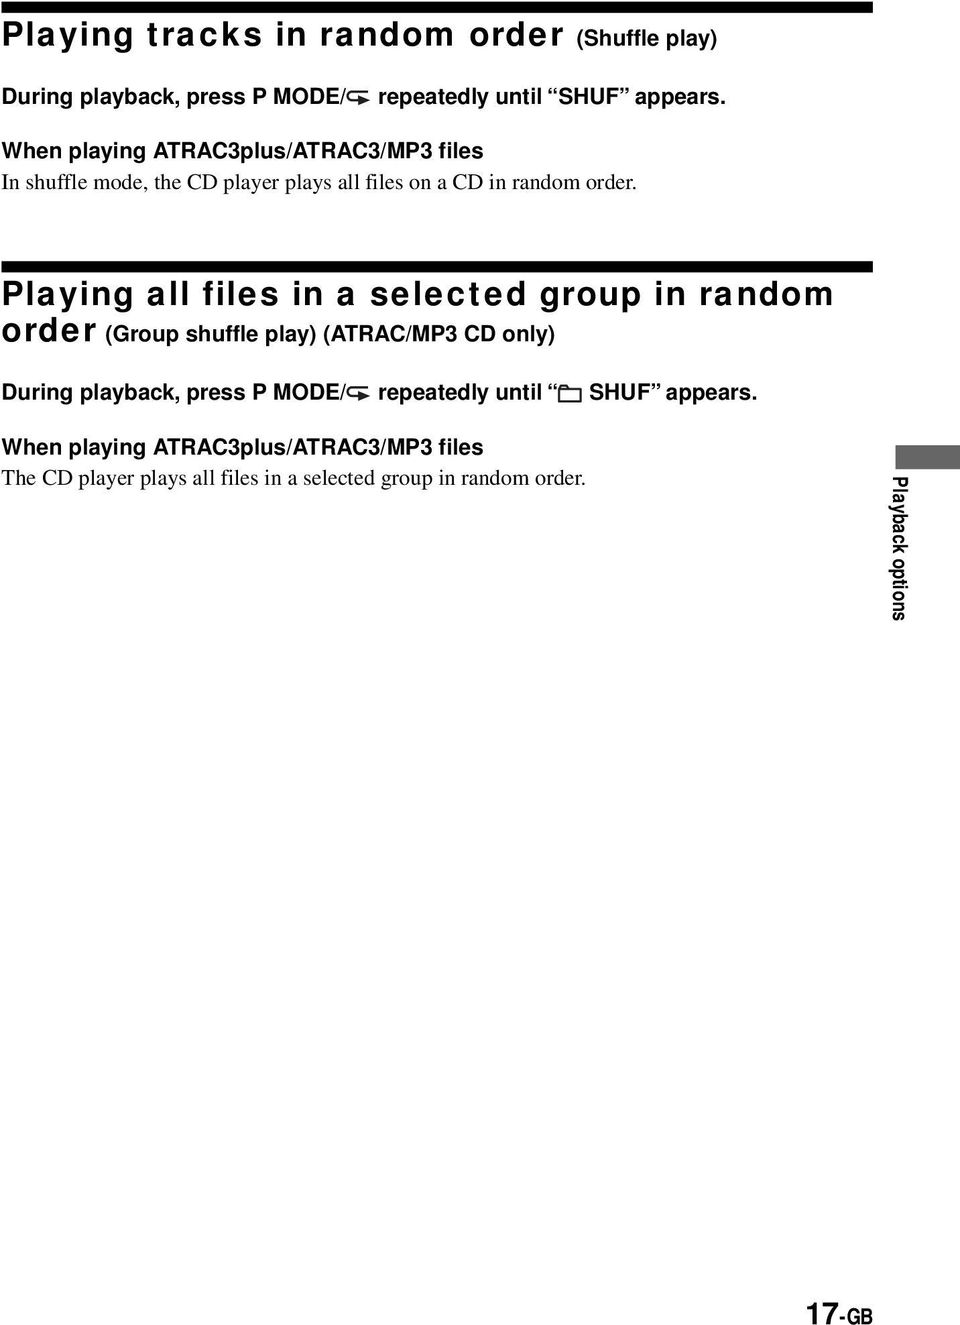 Playing all files in a selected group in random order (Group shuffle play) (ATRAC/MP3 CD only) During playback, press P MODE/